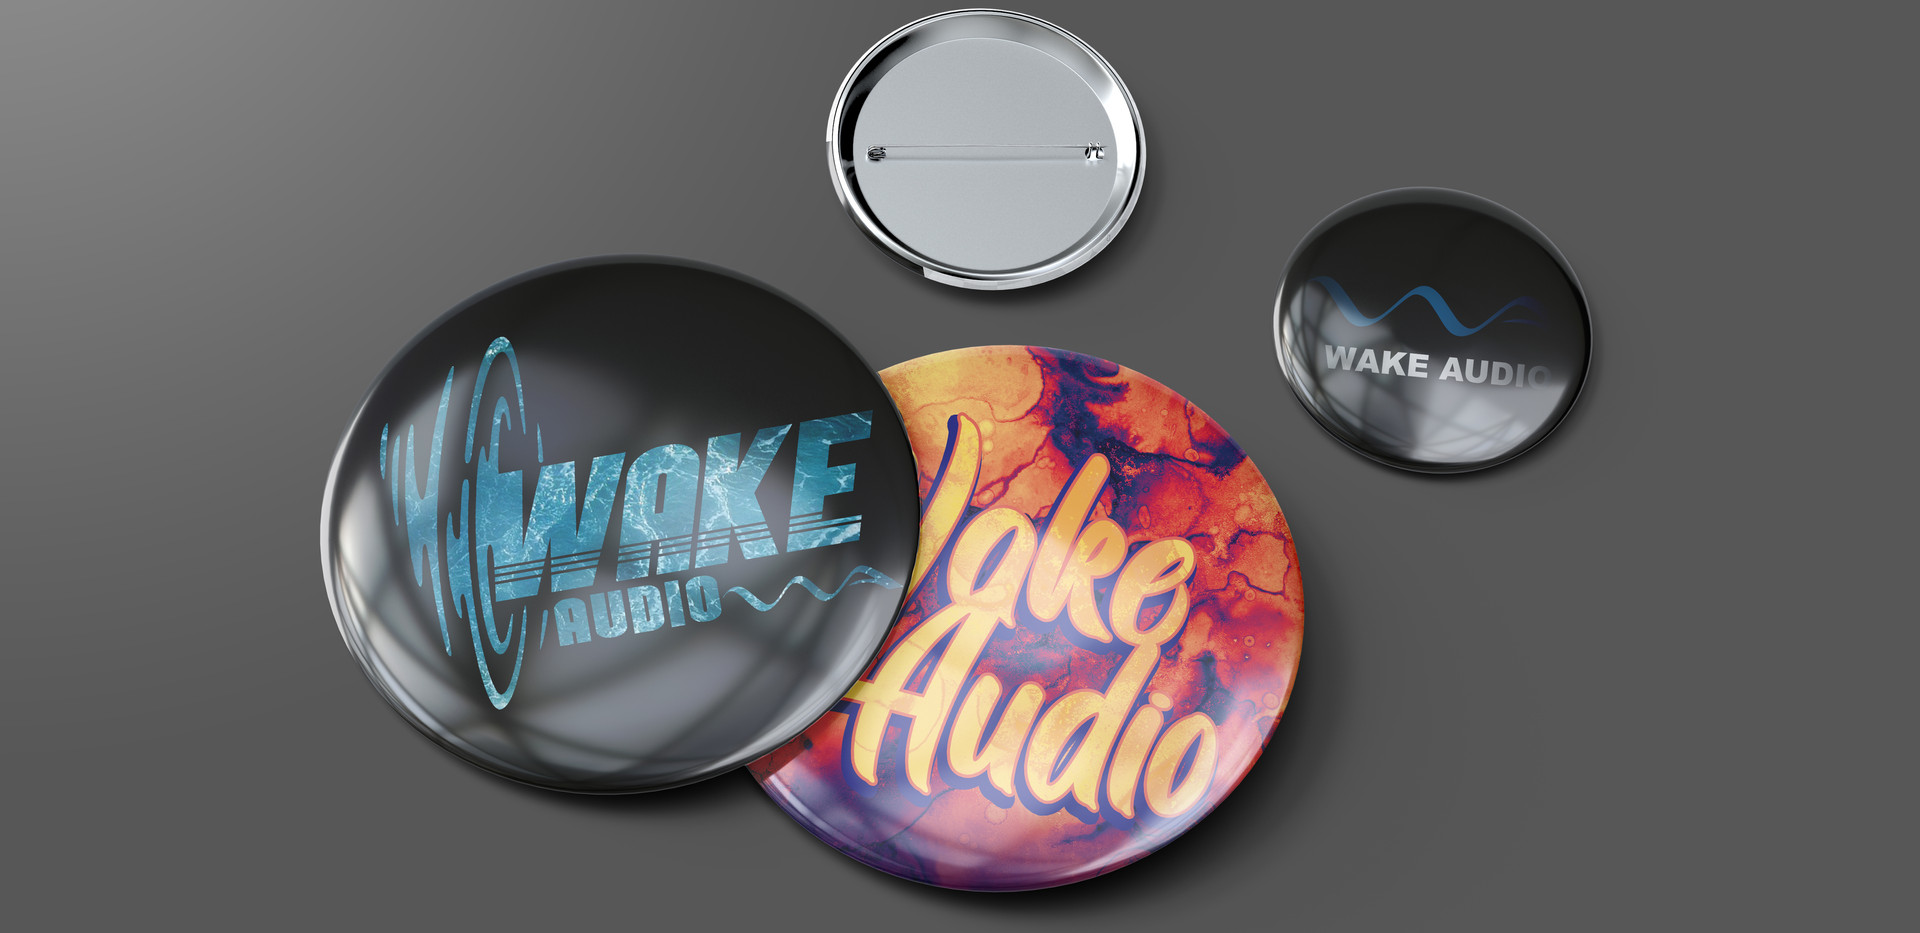 wake audio button